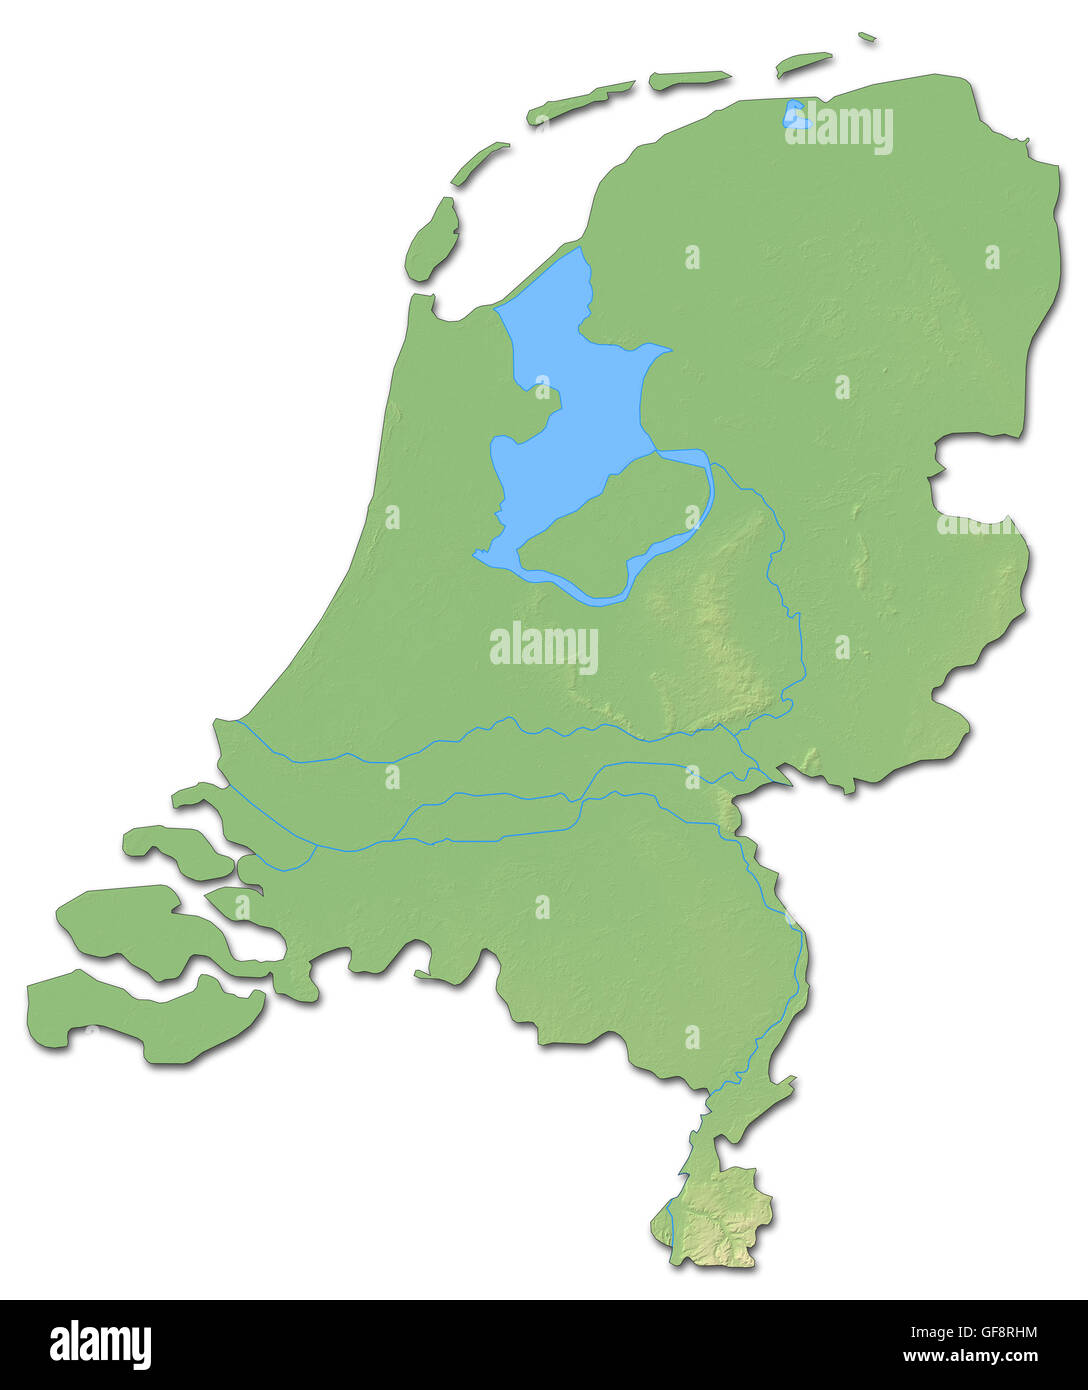 Netherlands map illustration stock photos netherlands map relief map of netherlands with shaded relief stock image publicscrutiny Gallery